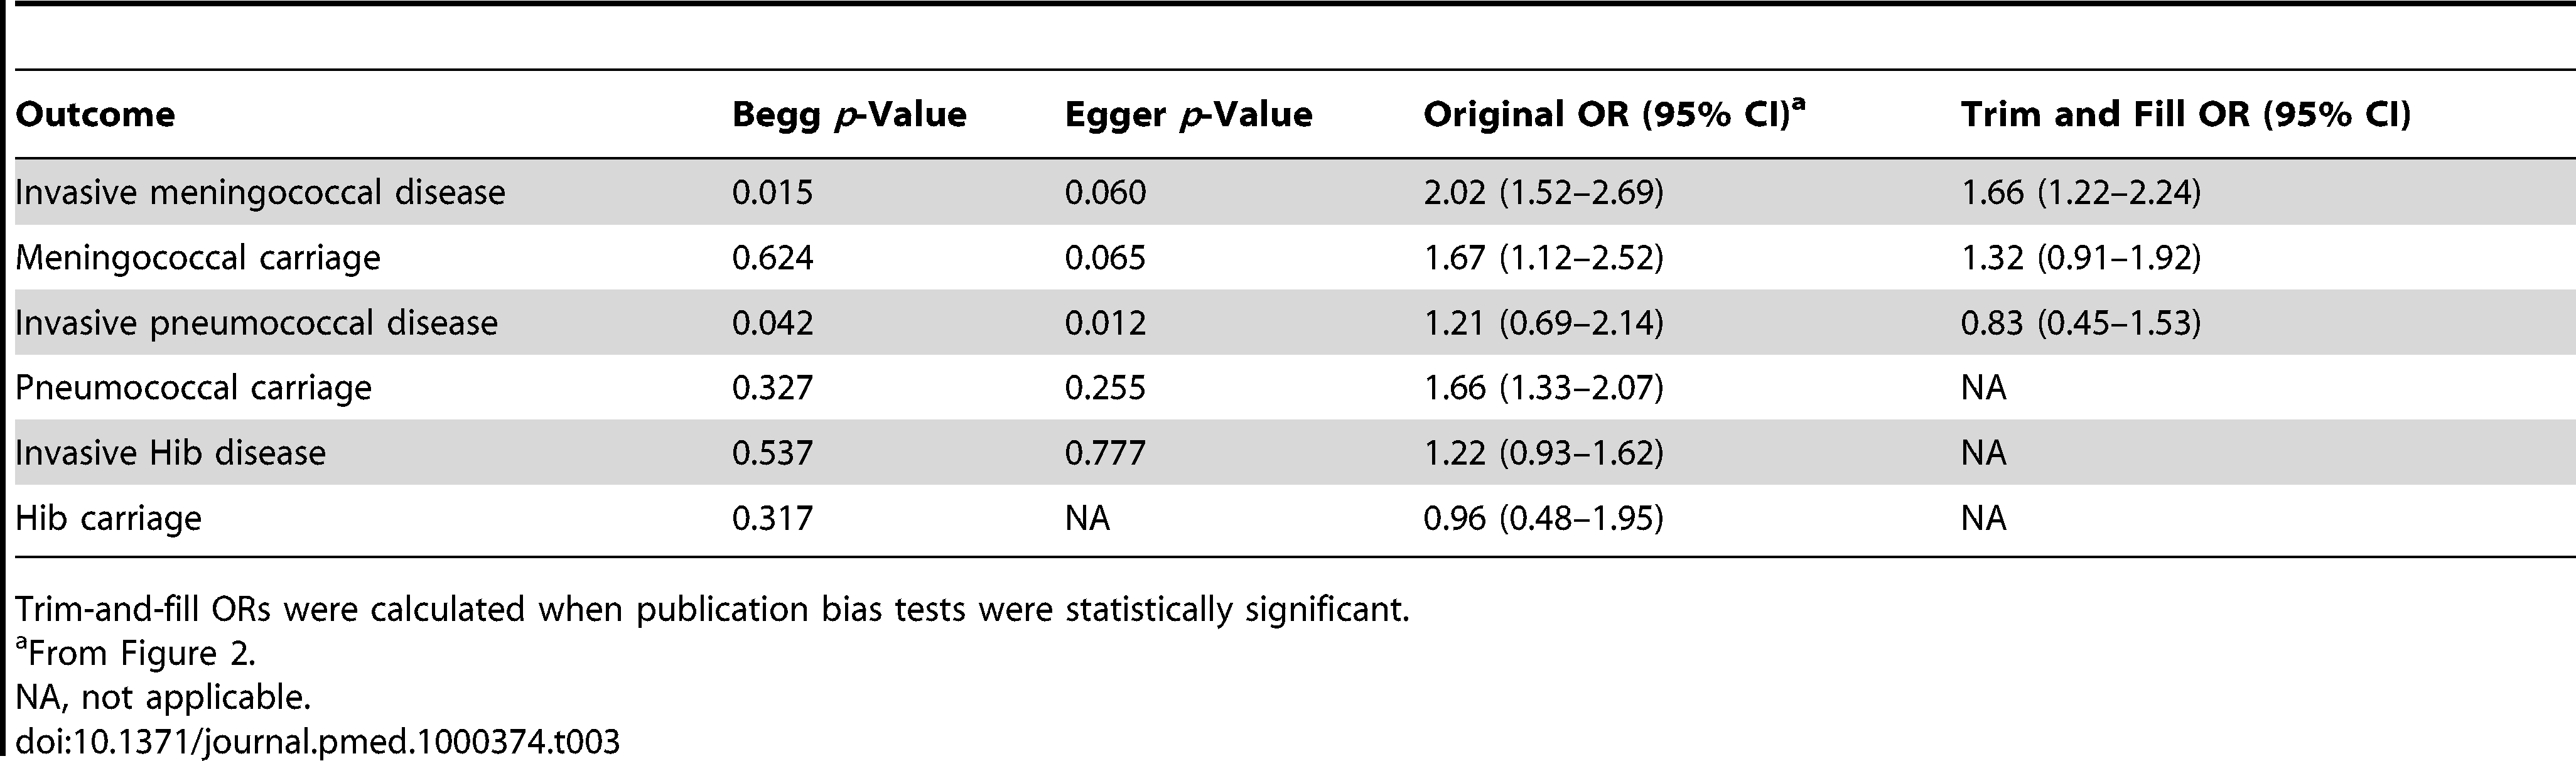 Tests for publication bias and trim-and-fill ORs.